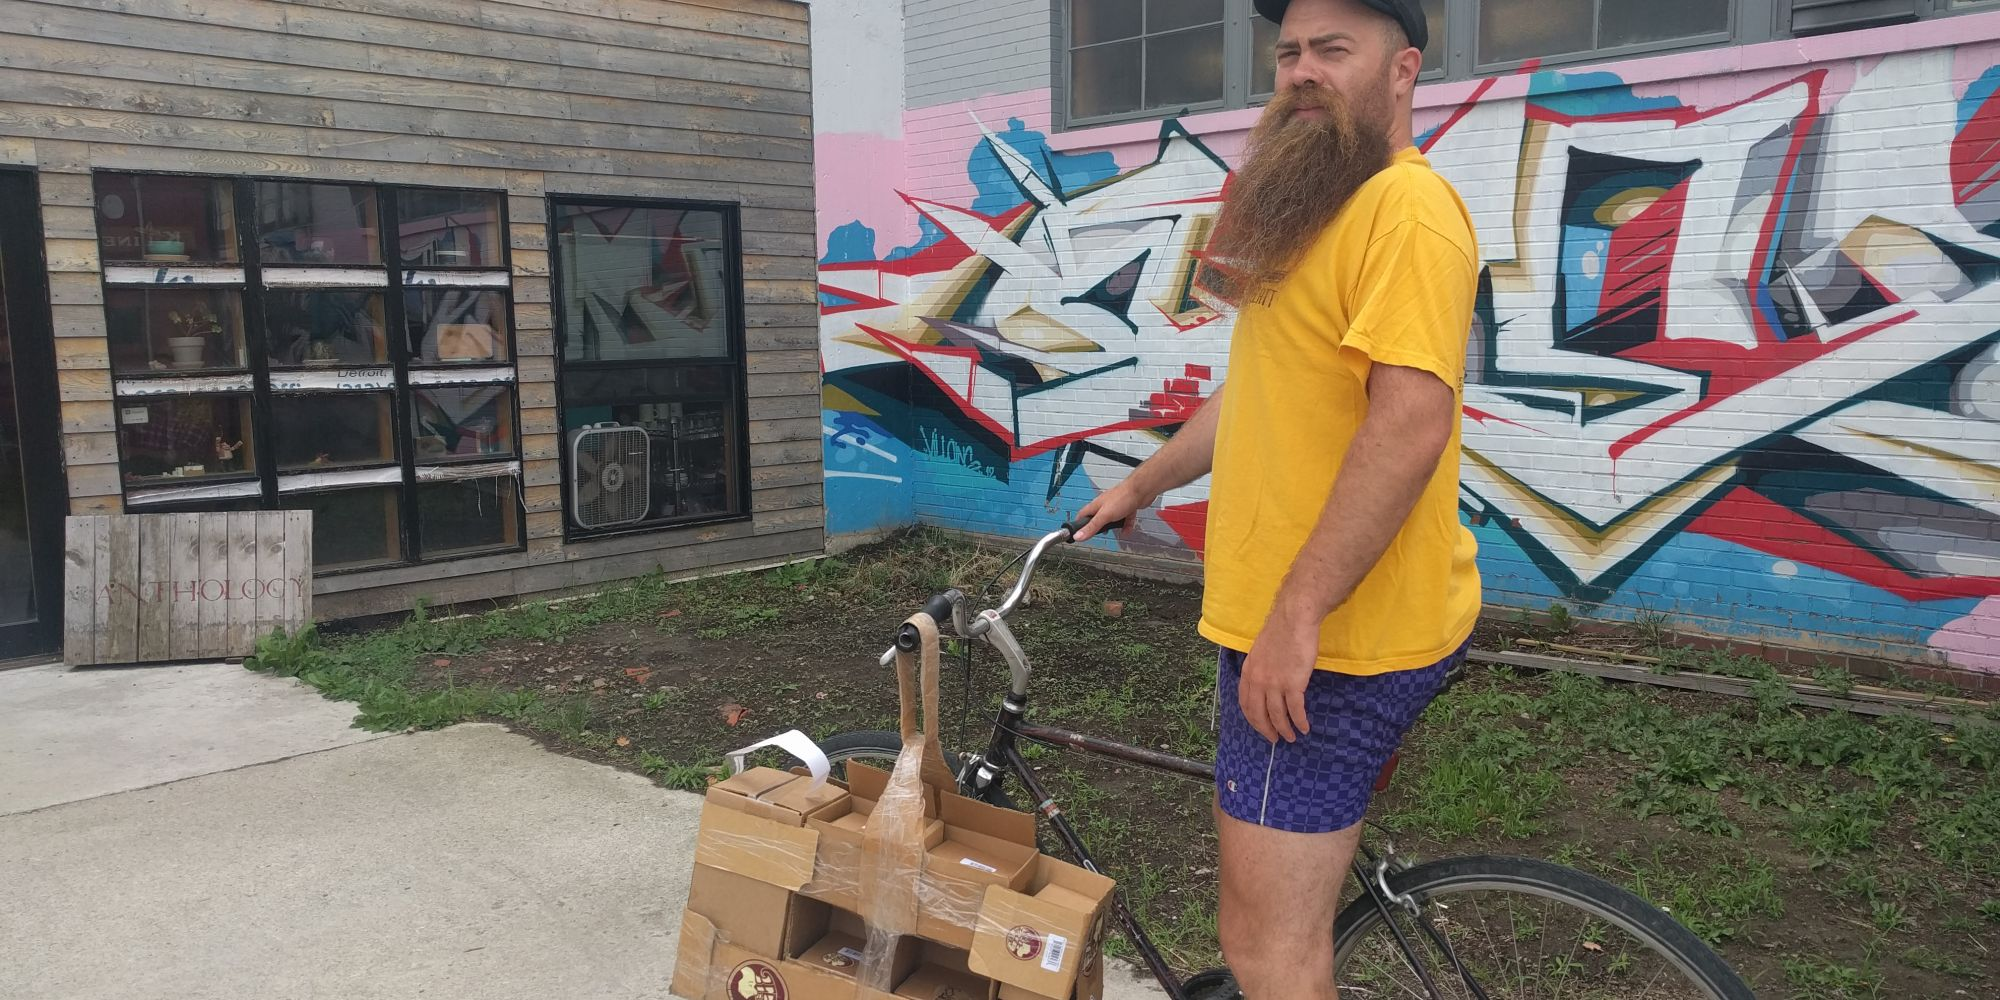 Beard Balm Founder Delivers The Goods And Builds Sales By Bike